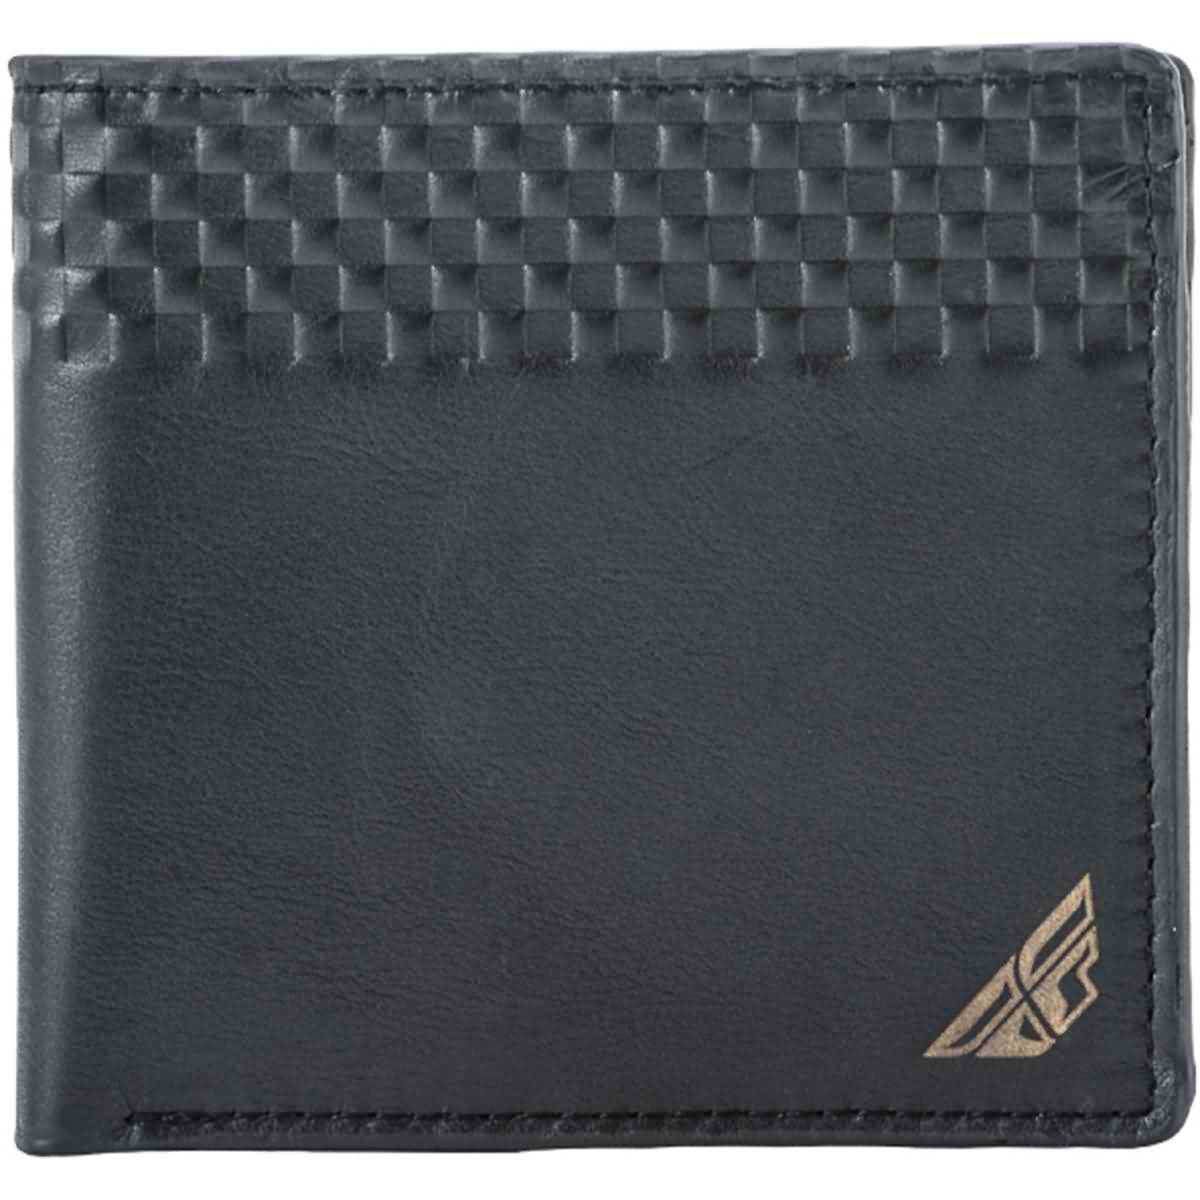 Fly Racing Leather Men's Wallets-360